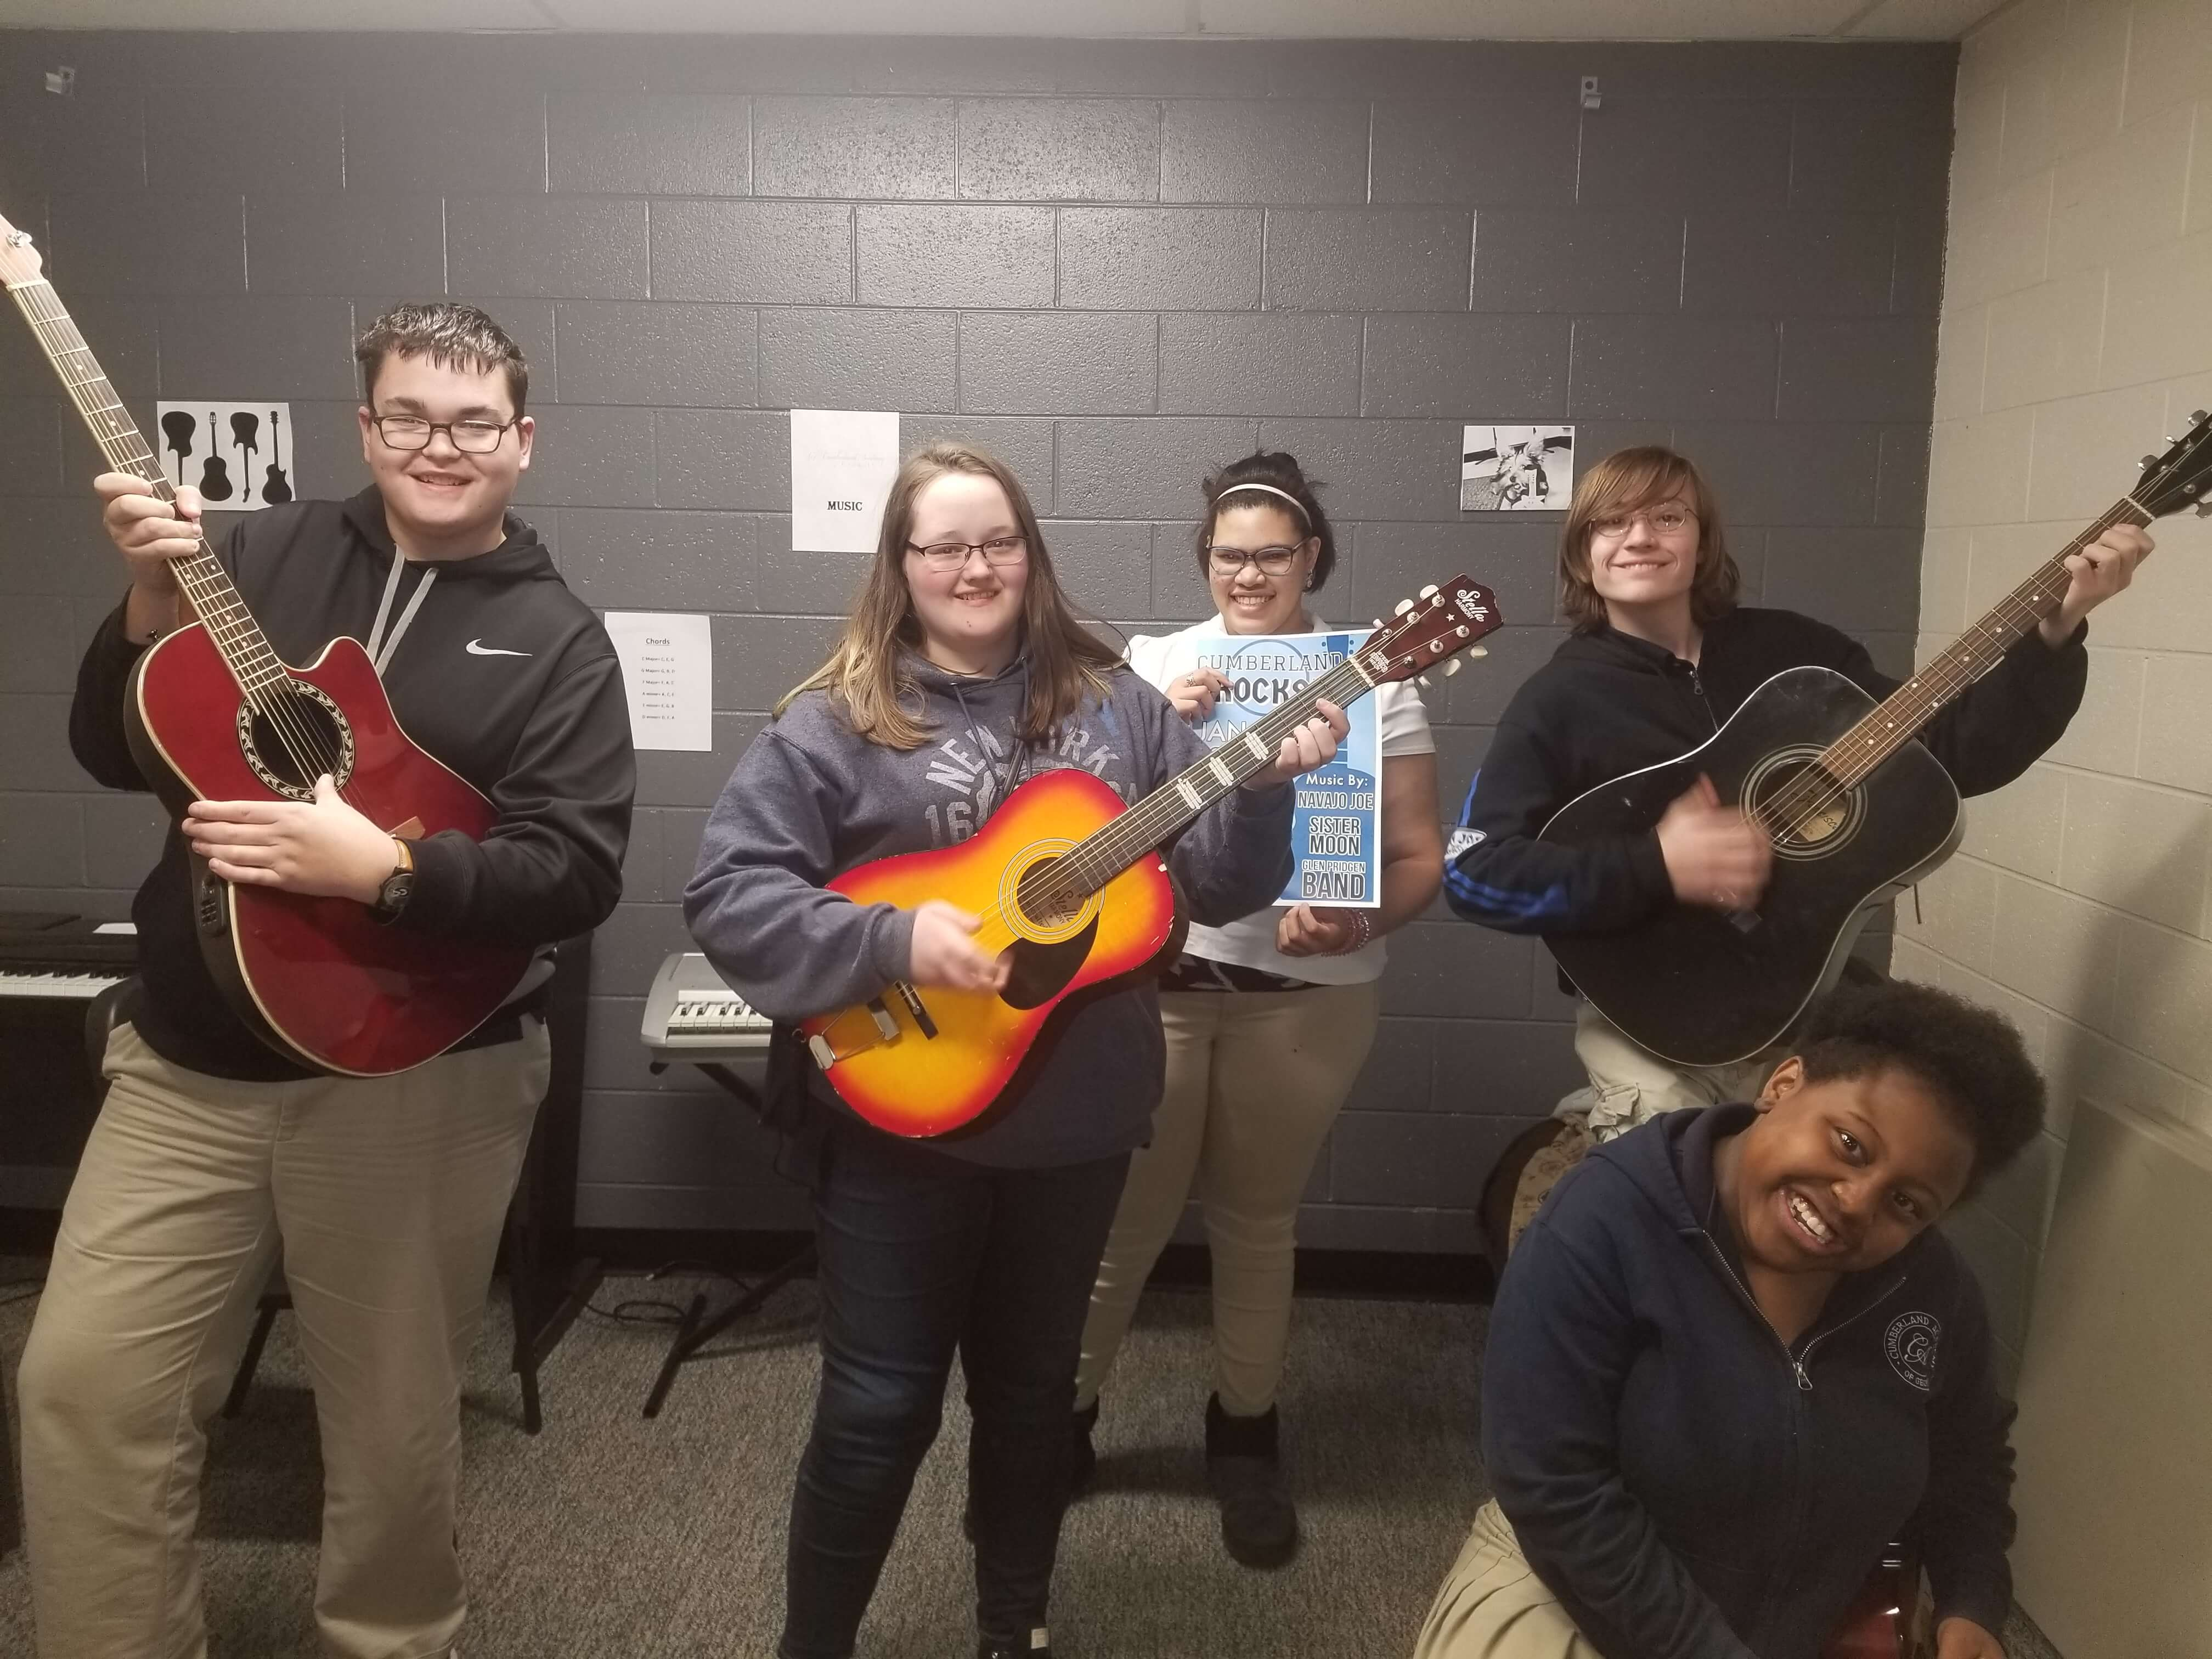 Students Showing Excitement for Hard Rock Cafe Fundraiser